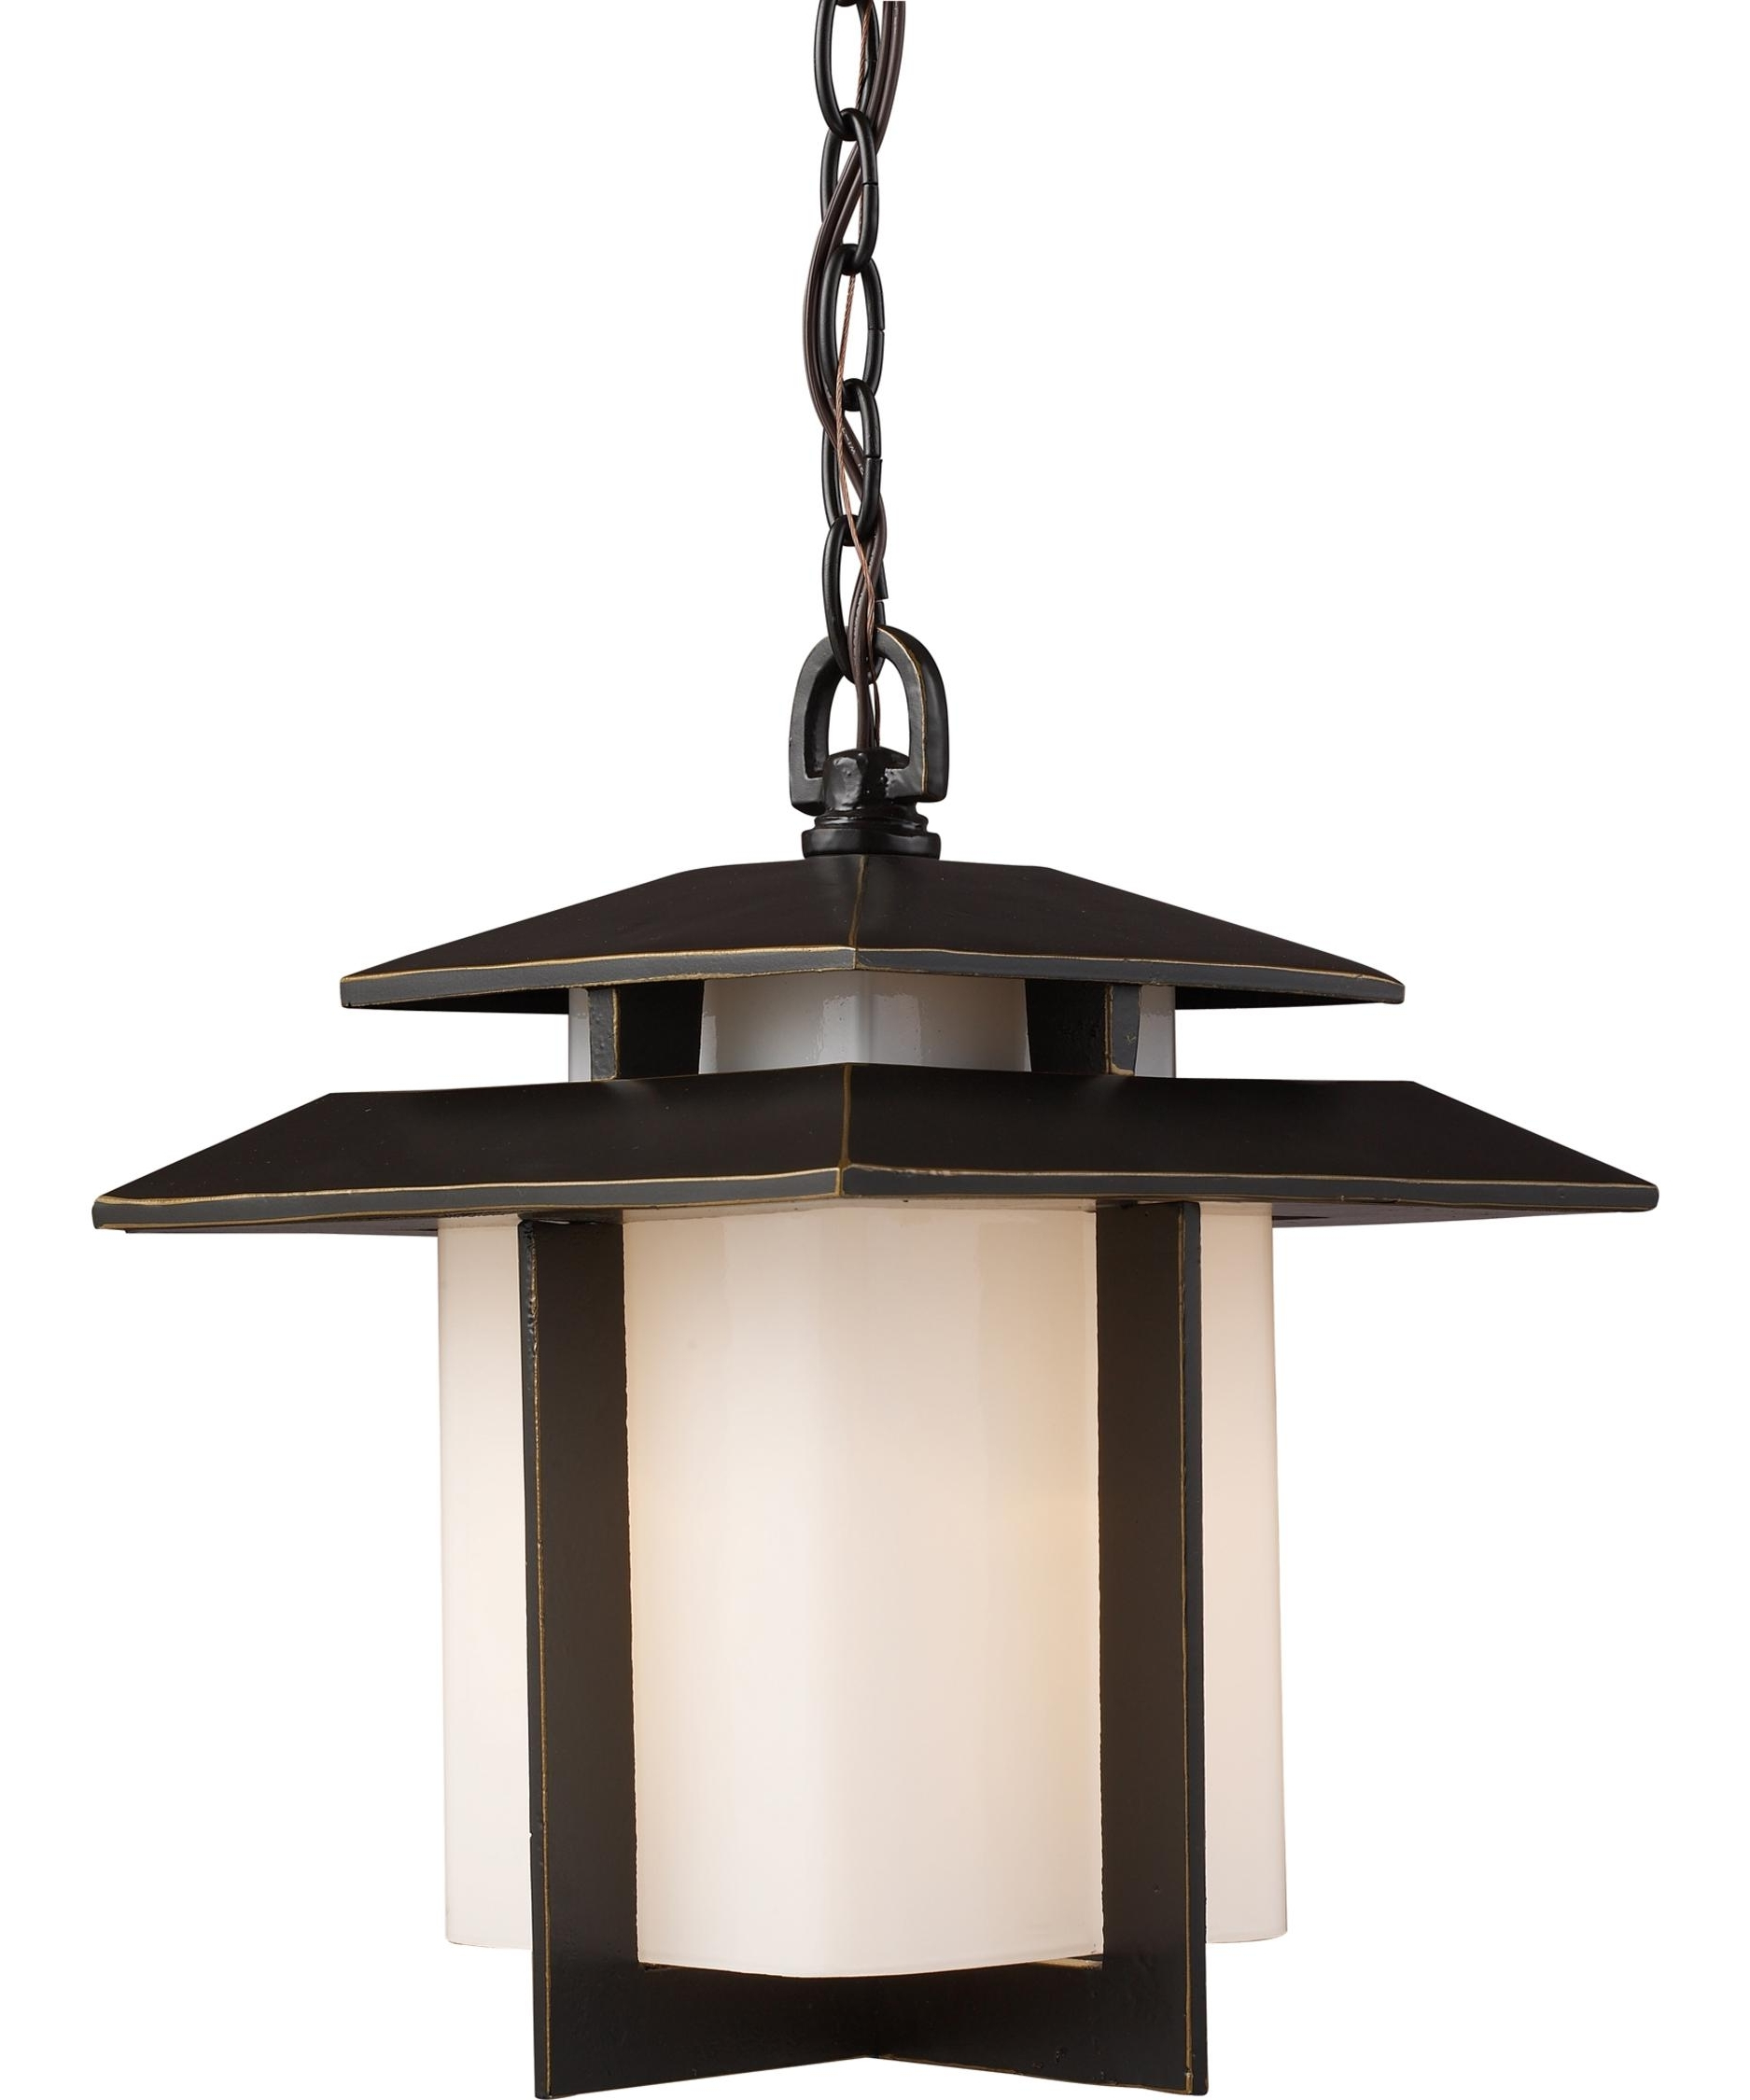 Light : Outdoor Lighting Ideas Without Electricity Exterior Fixtures Within Well Liked Outdoor Lighting And Light Fixtures (View 8 of 20)